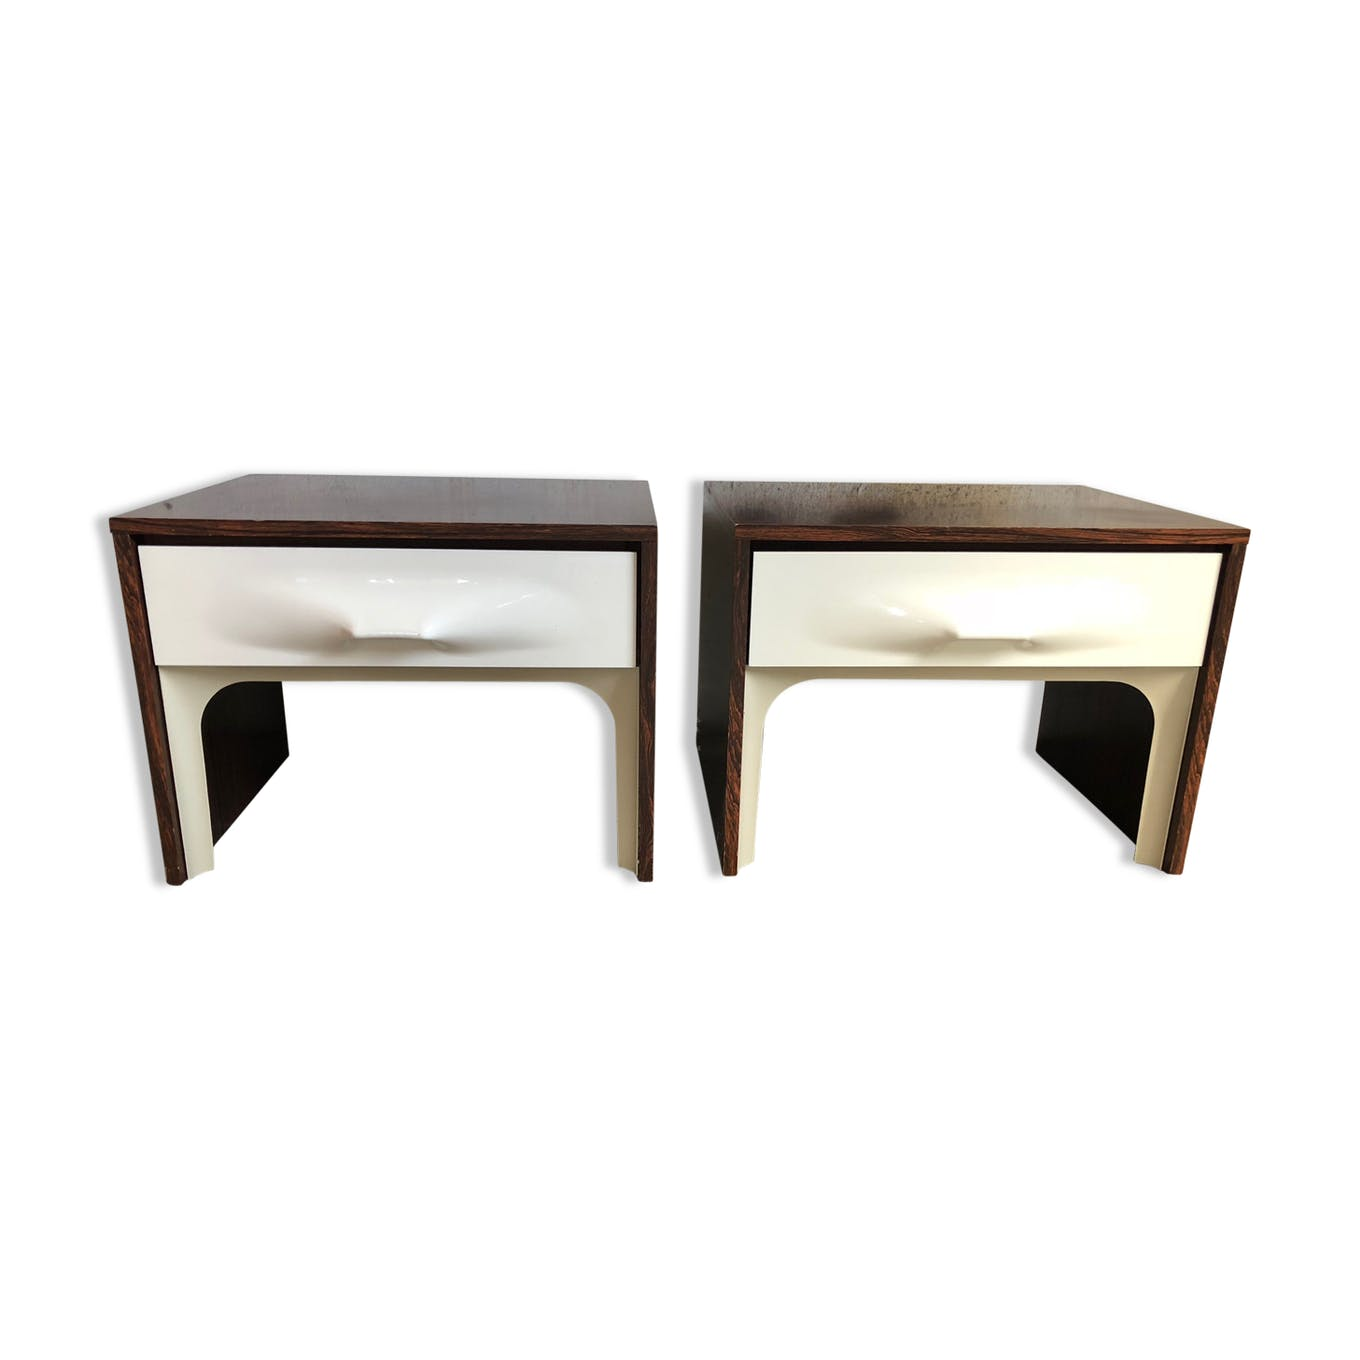 Table De Chevet Componibili set of 2 tables of bedside raymond loewy df 2000 - wood